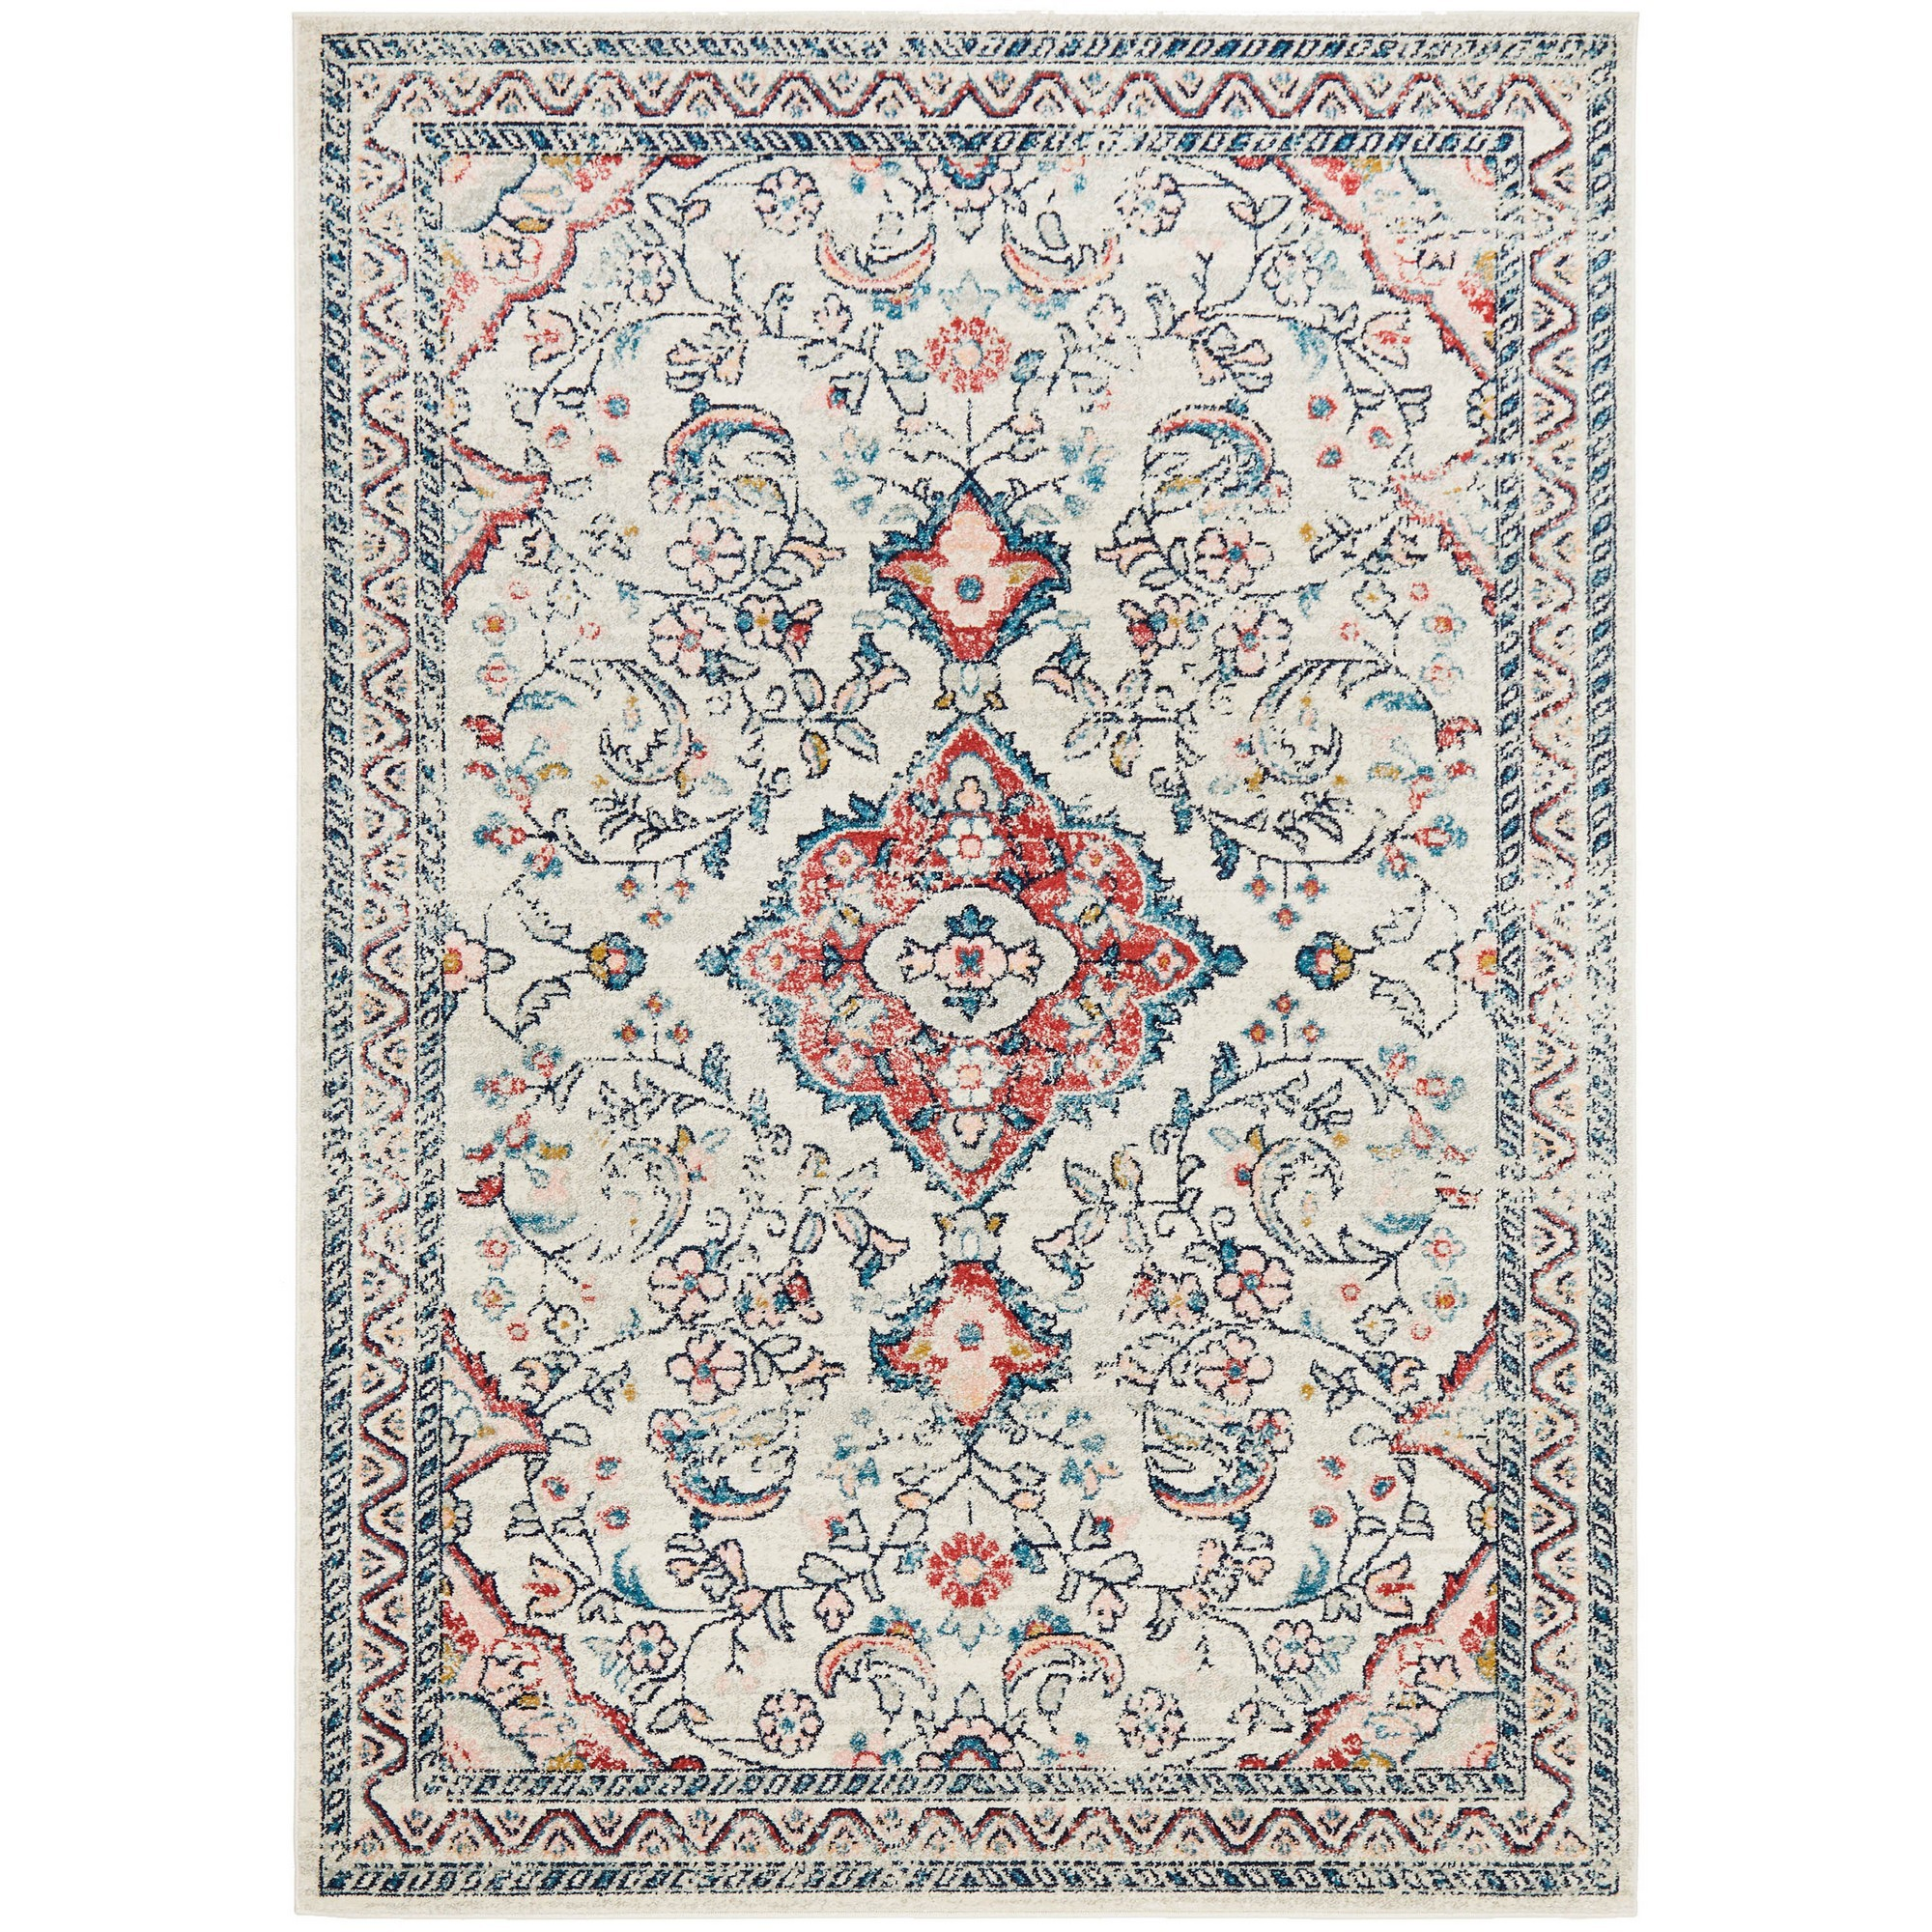 Avenue No.705 Tribal Rug, 400x300cm, Off White / Red